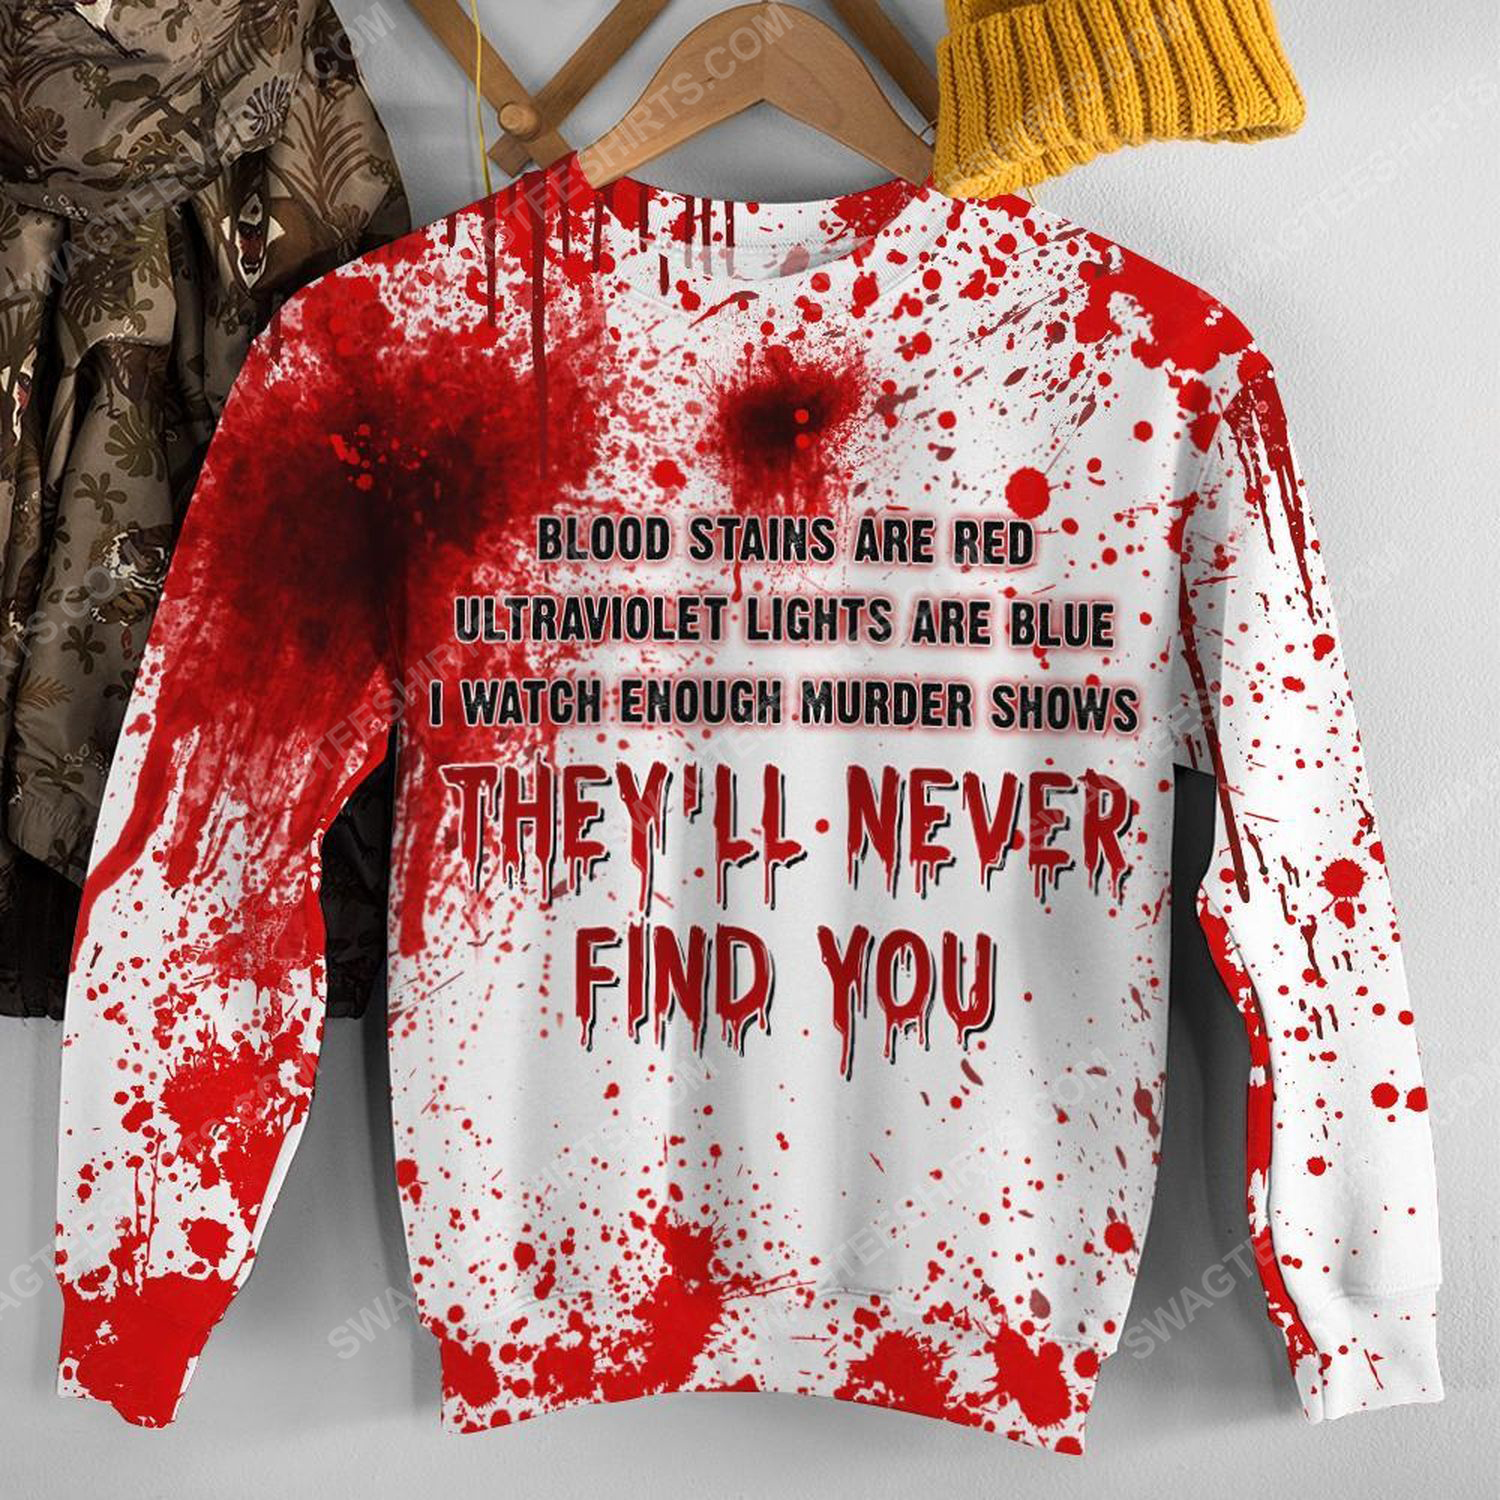 Halloween blood stains are red ultraviolet lights are blue i watch enough murder shows they'll never find you sweatshirt